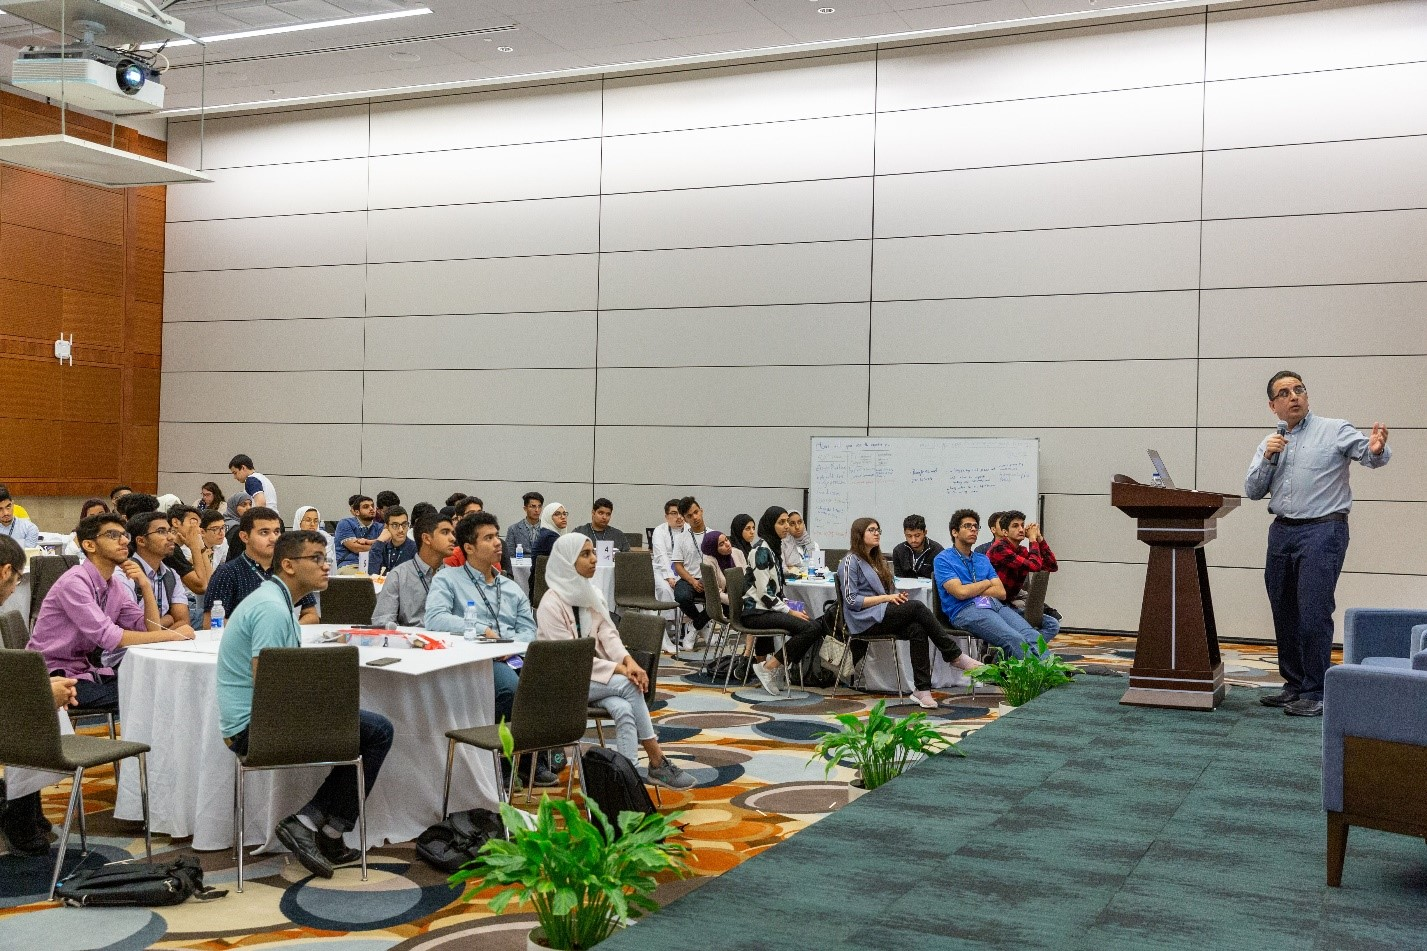 KAUST Professor Husam Alshareef presents on latest developments in research related to Material Science and Engineering.